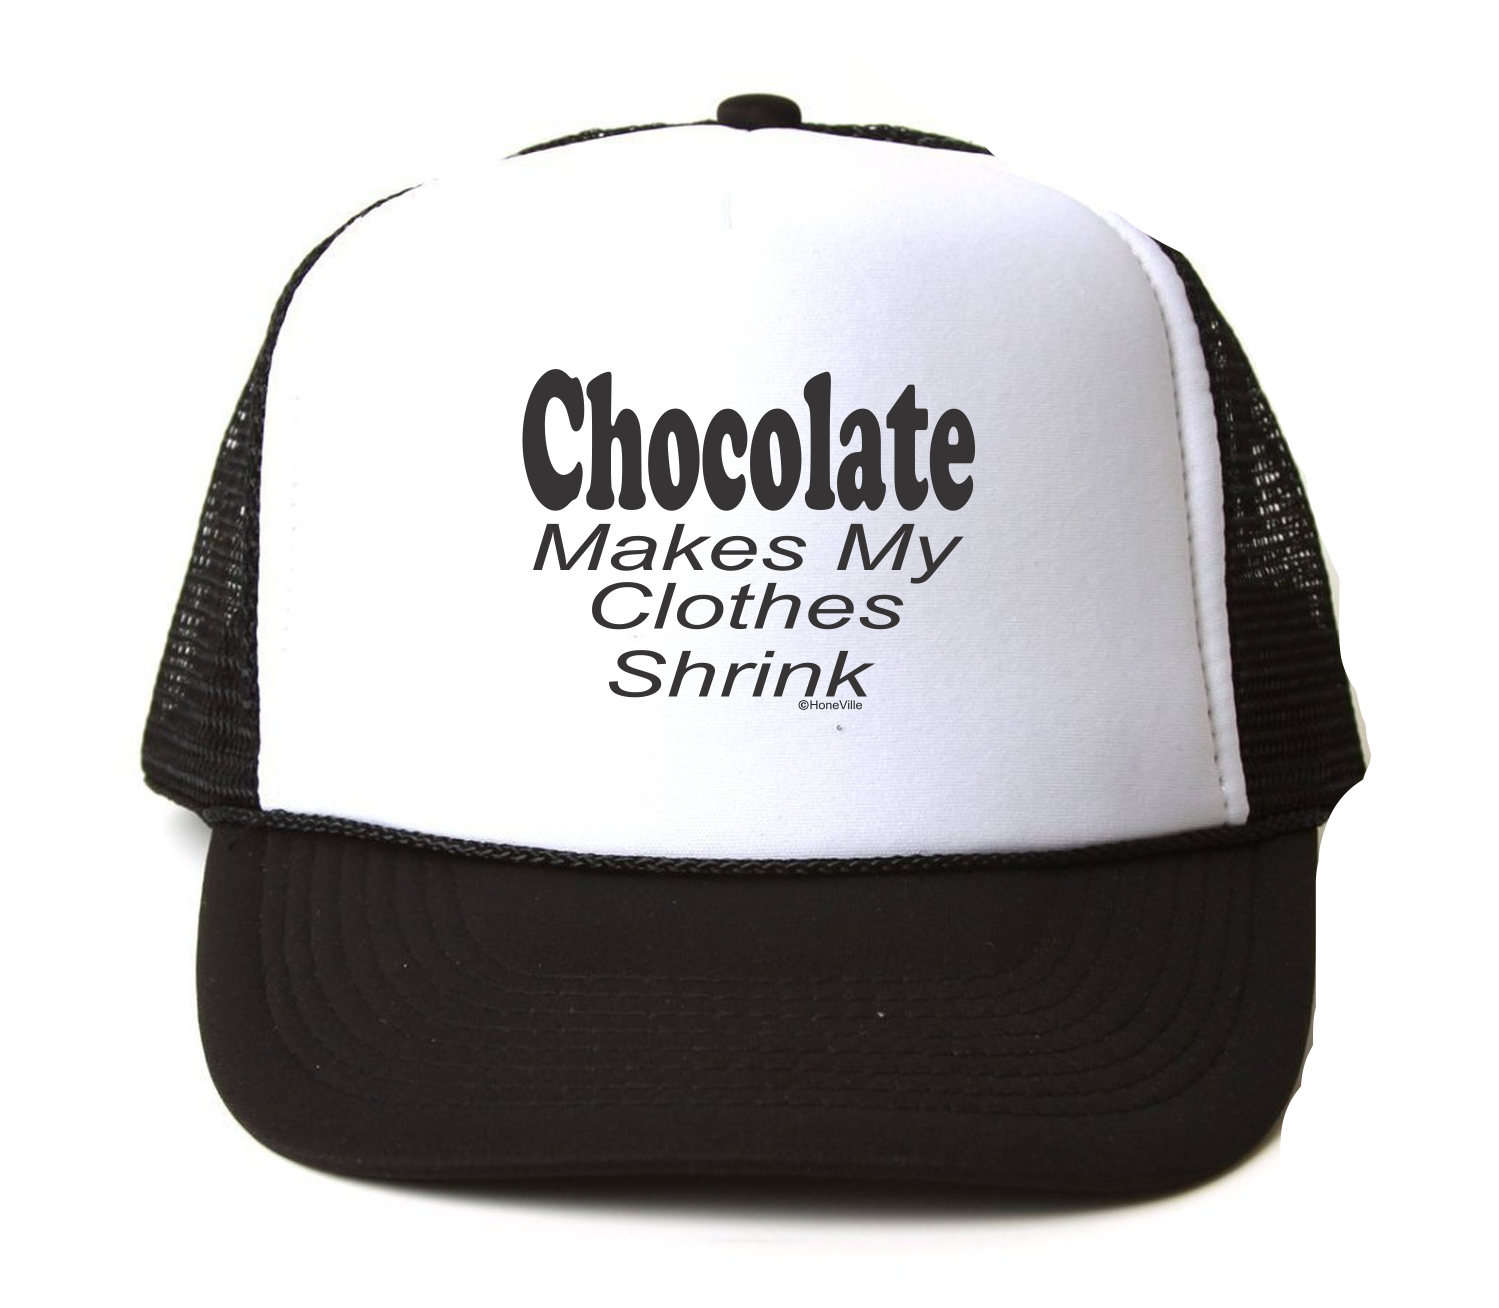 Trucker Hat Cap Foam Mesh Makes Chocolate Makes Mesh My Clothes Shrink Funny c70910